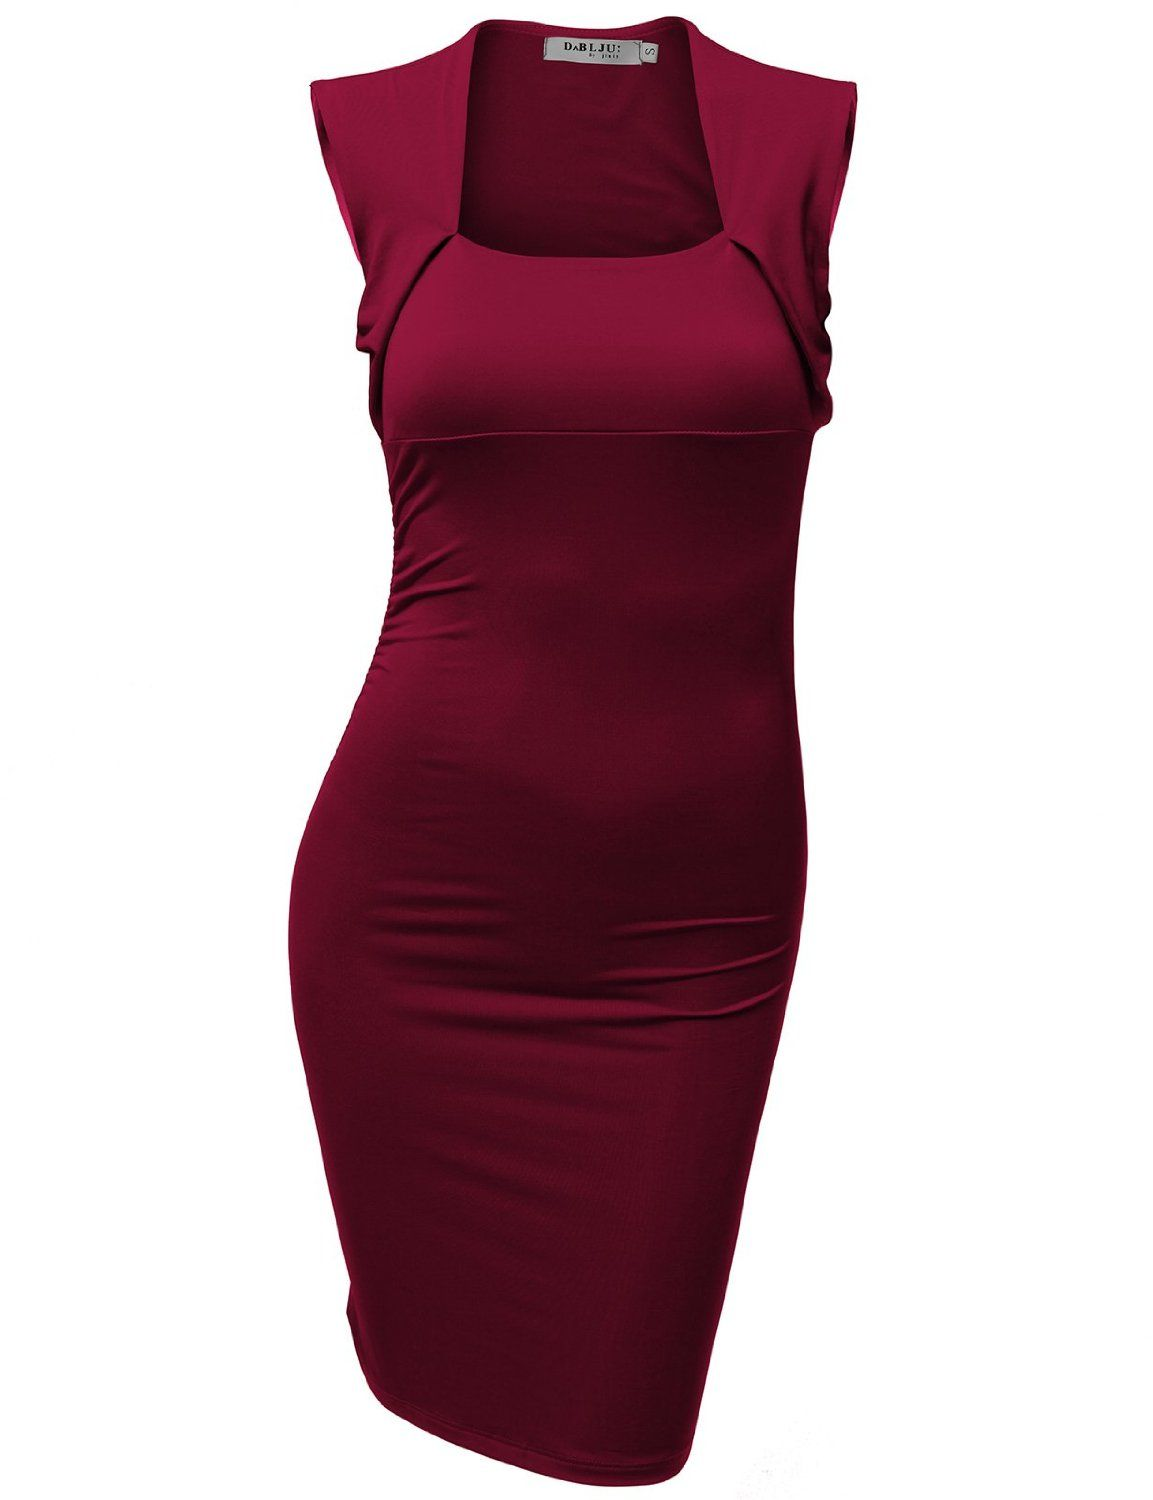 Doublju Fitted Dress with Square Neck Line EUR 14,79